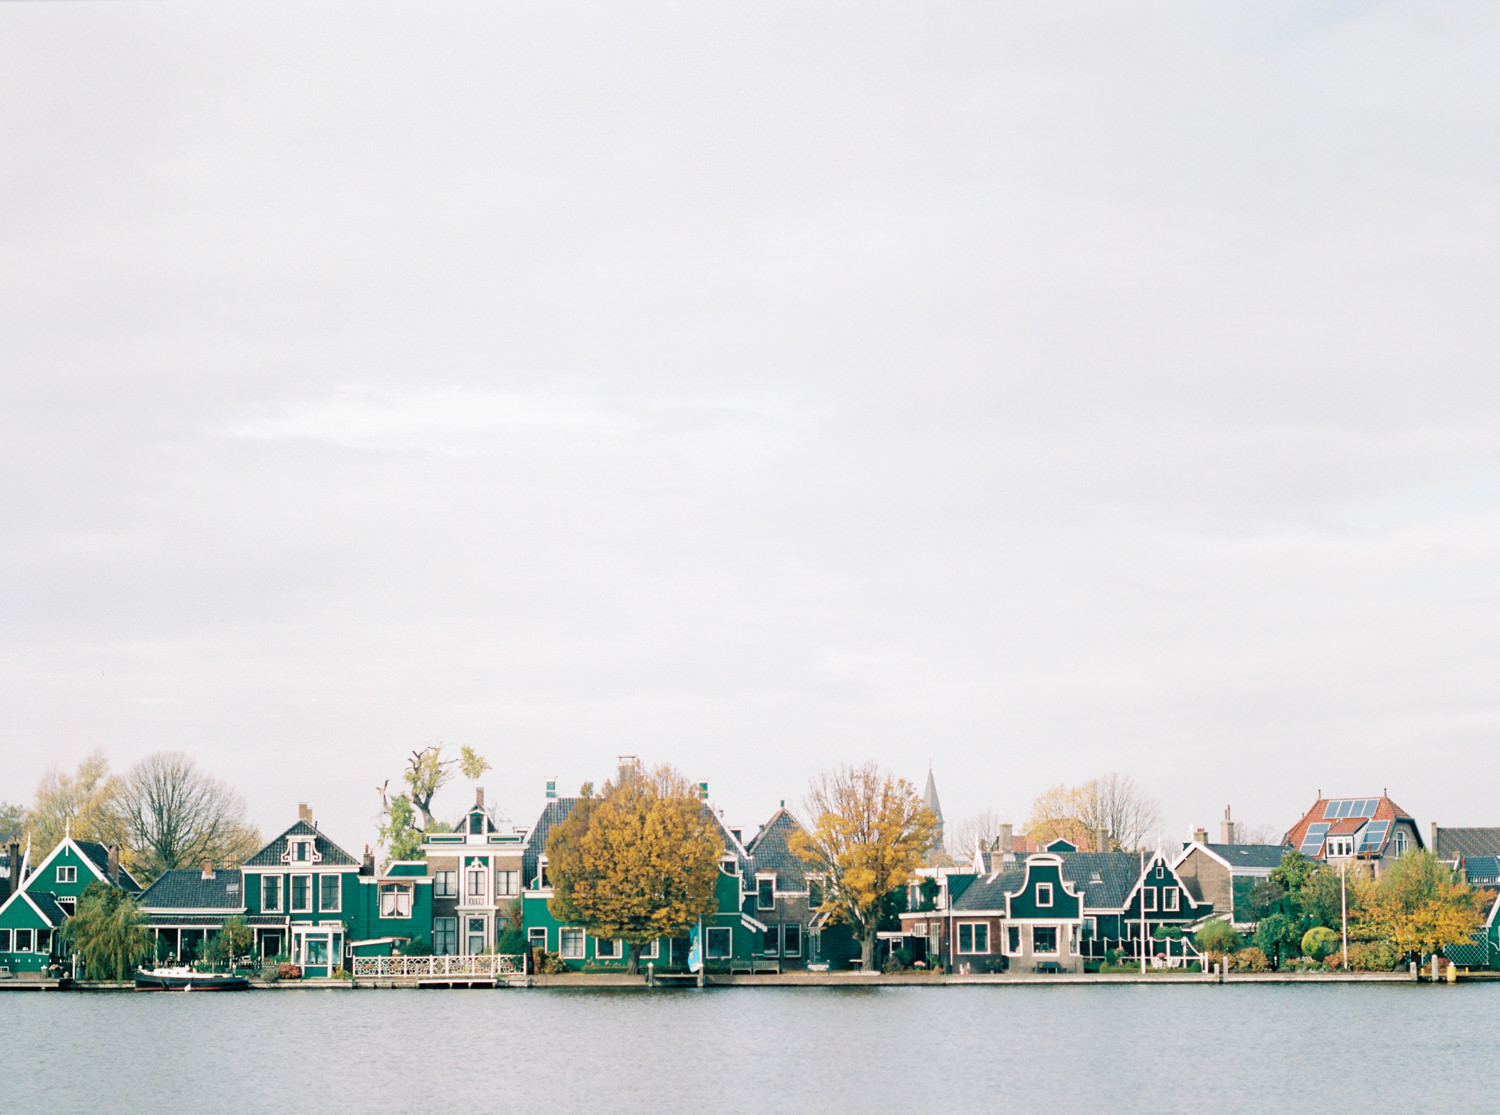 the iconic view of Dutch village Zaanse Schans with its green little houses